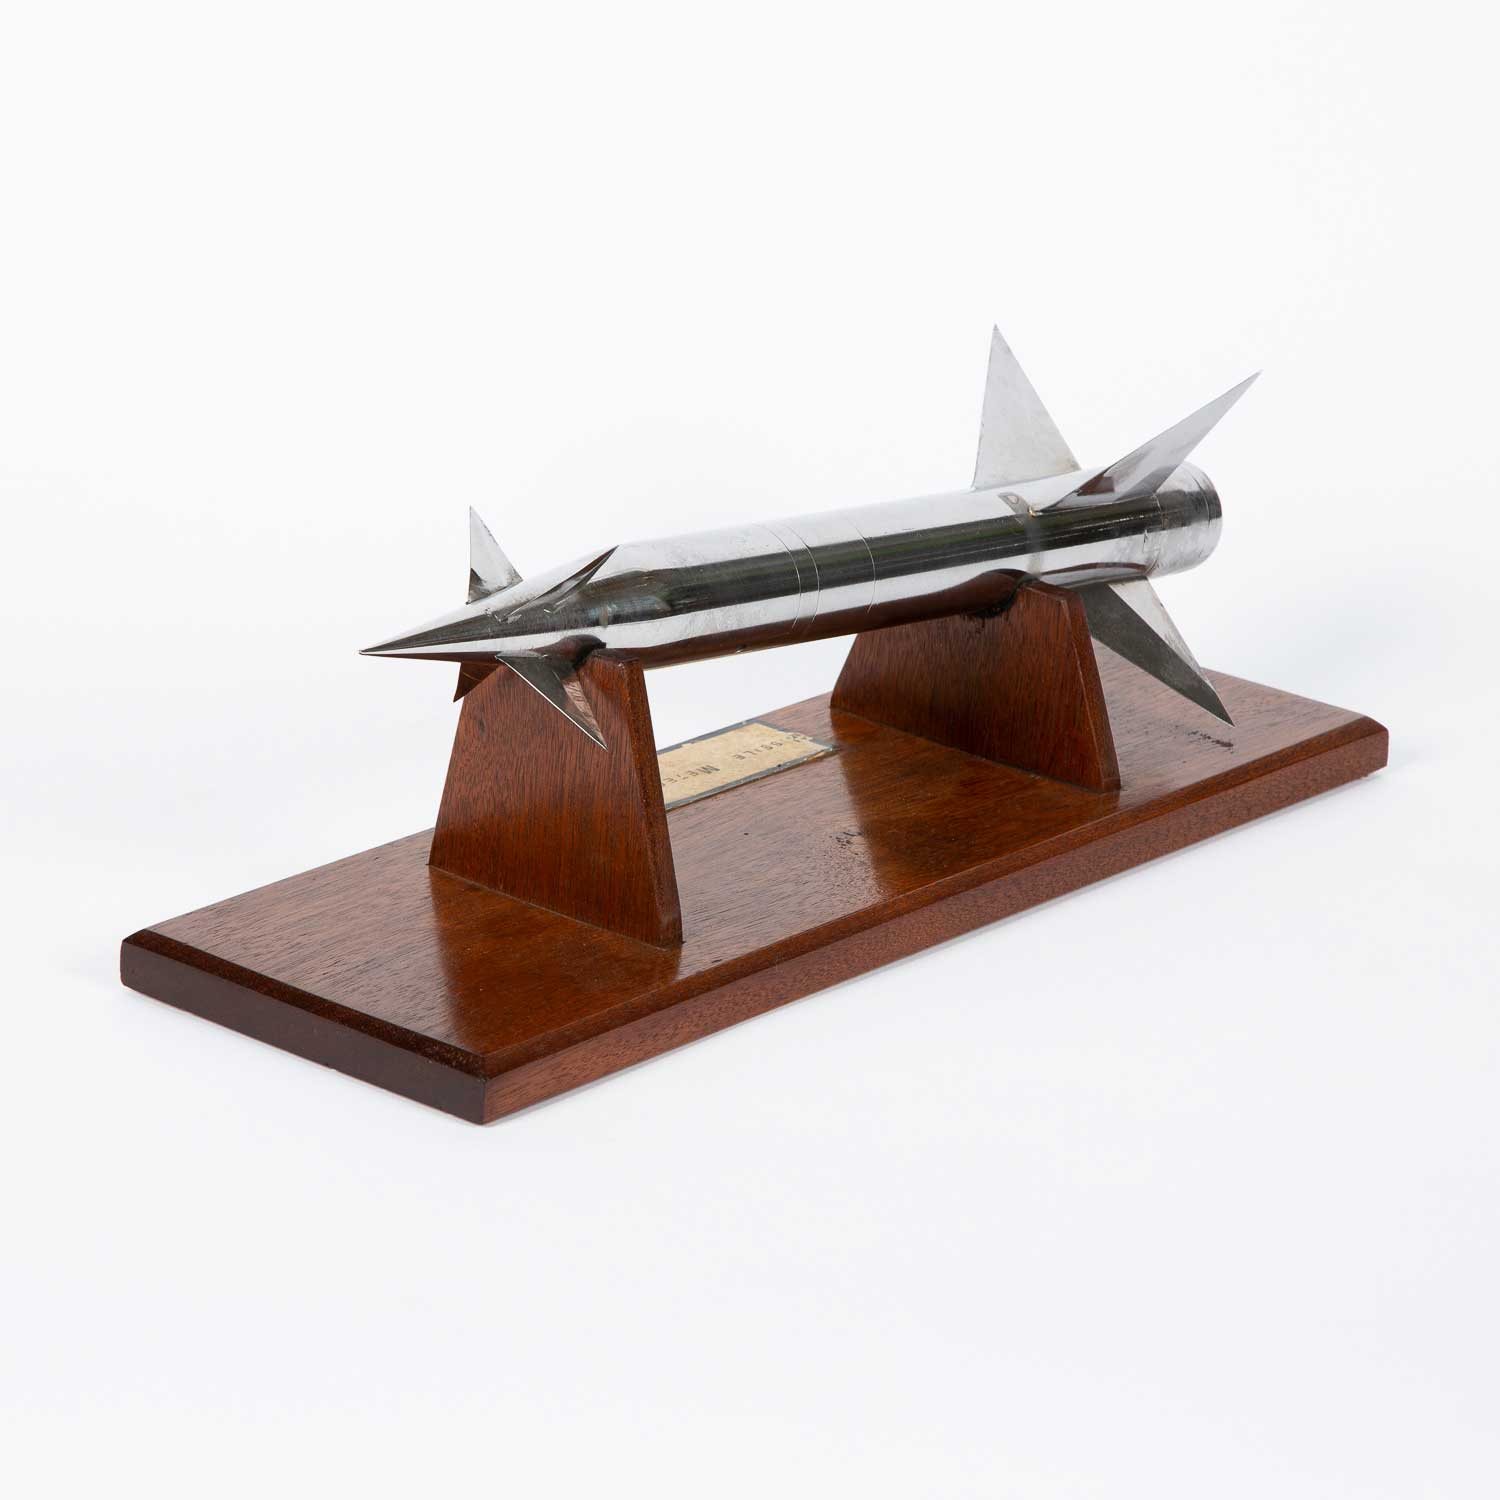 Sounding rocket wind tunnel model